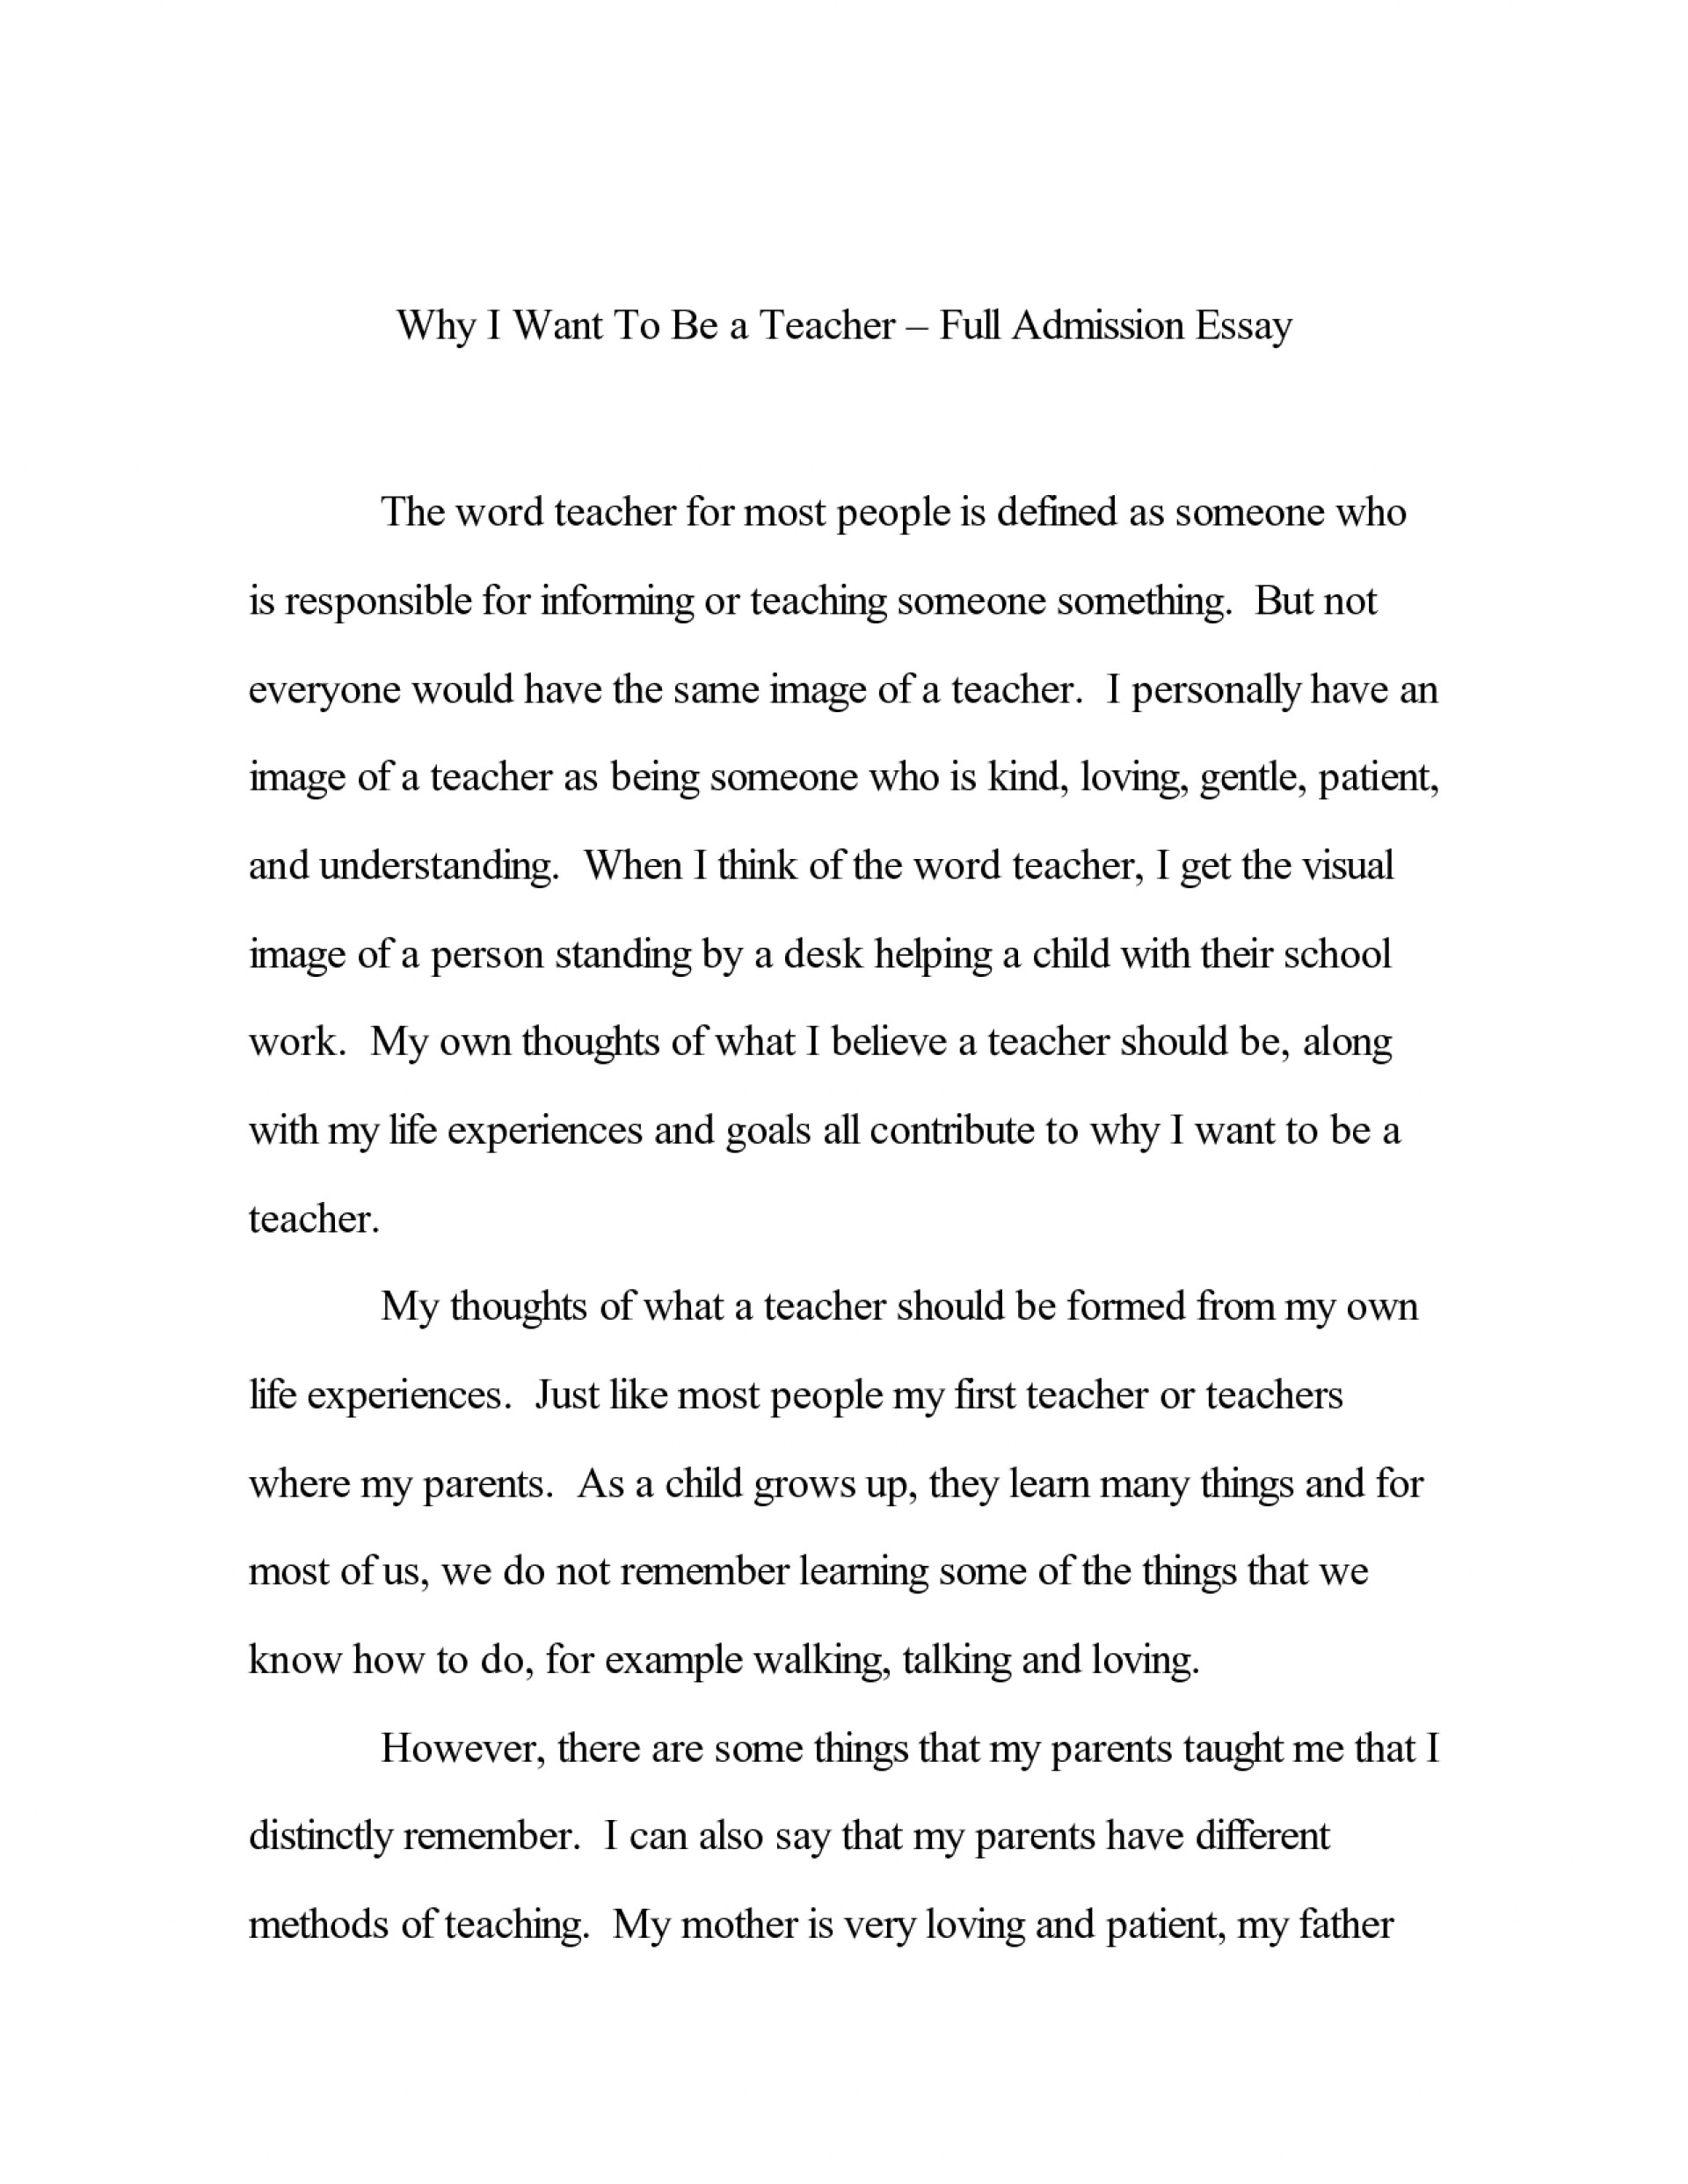 006 Word Essay Format Outline Sample Lending Scholarship Examples Career Goals Wi Why Do Youe This Single Mother About Yourself Pdf Financial Need Nursing Words Example Awesome You Deserve Think How To Write A 1920